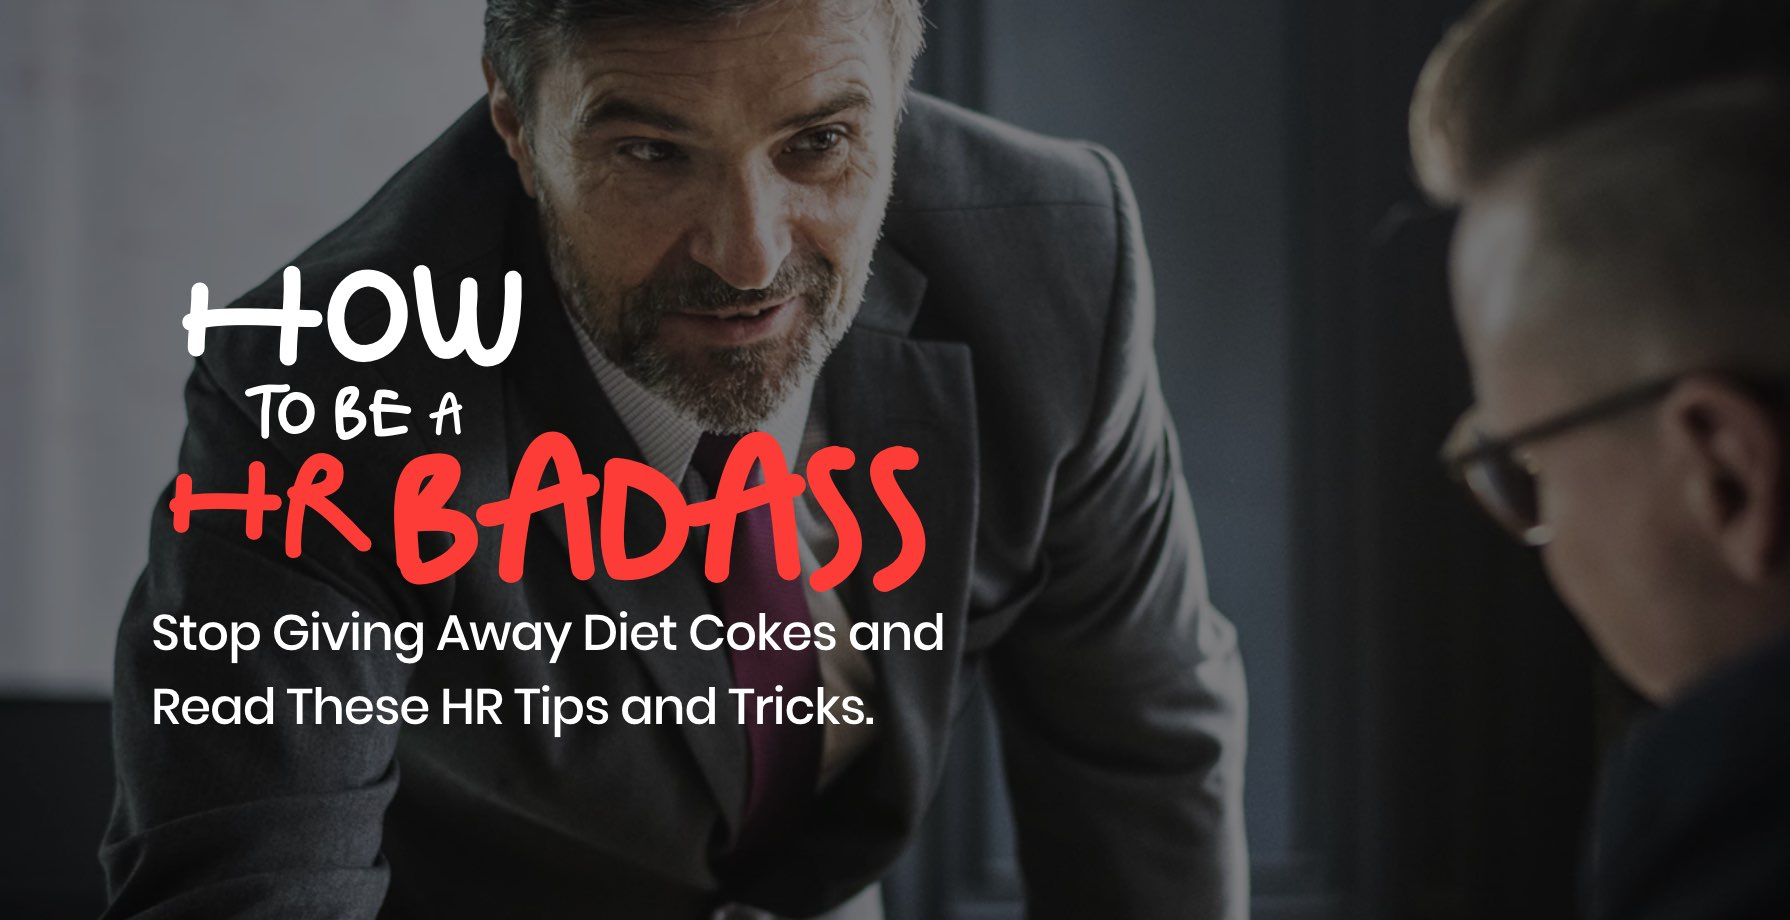 Easily digestible HR Tips and Tricks for everyone to work with